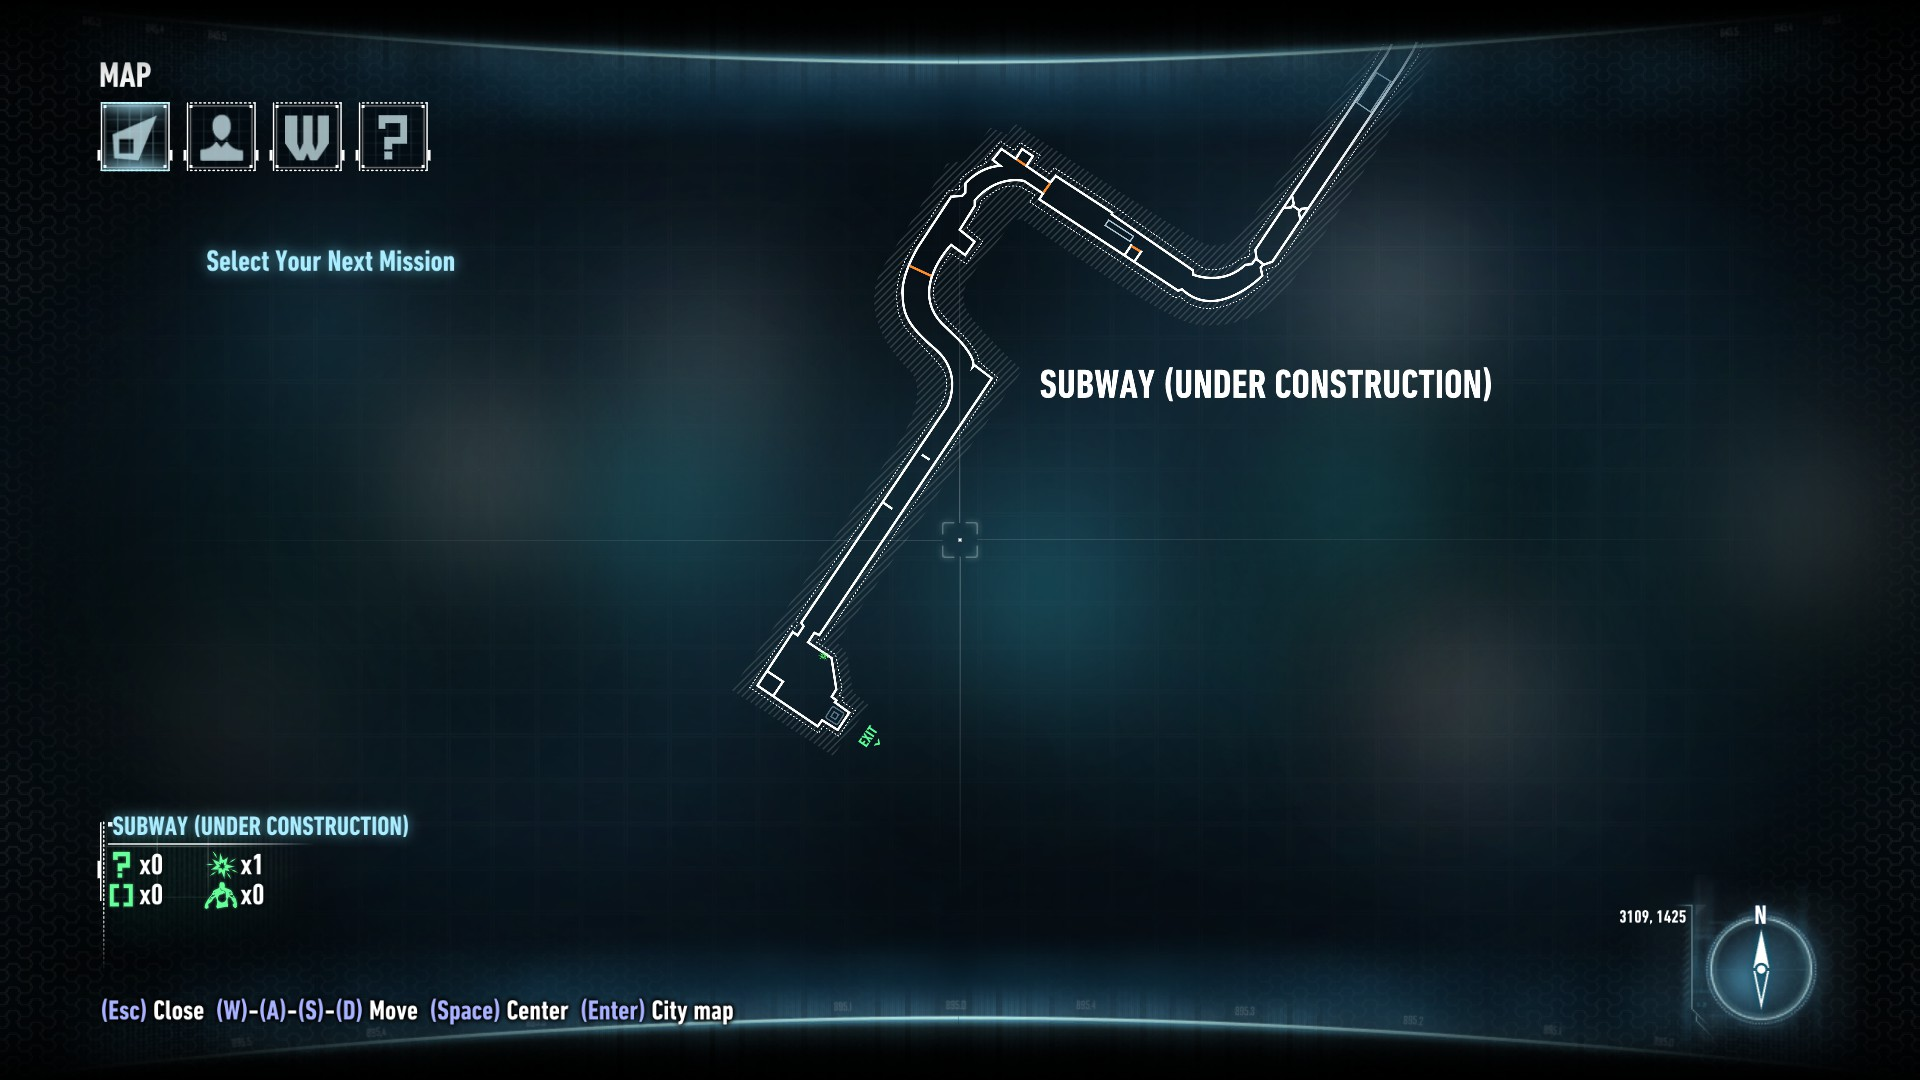 Arkham Knight Subway Map.Steam Community Guide Riddler Trophies 242 Out Of 243 Save